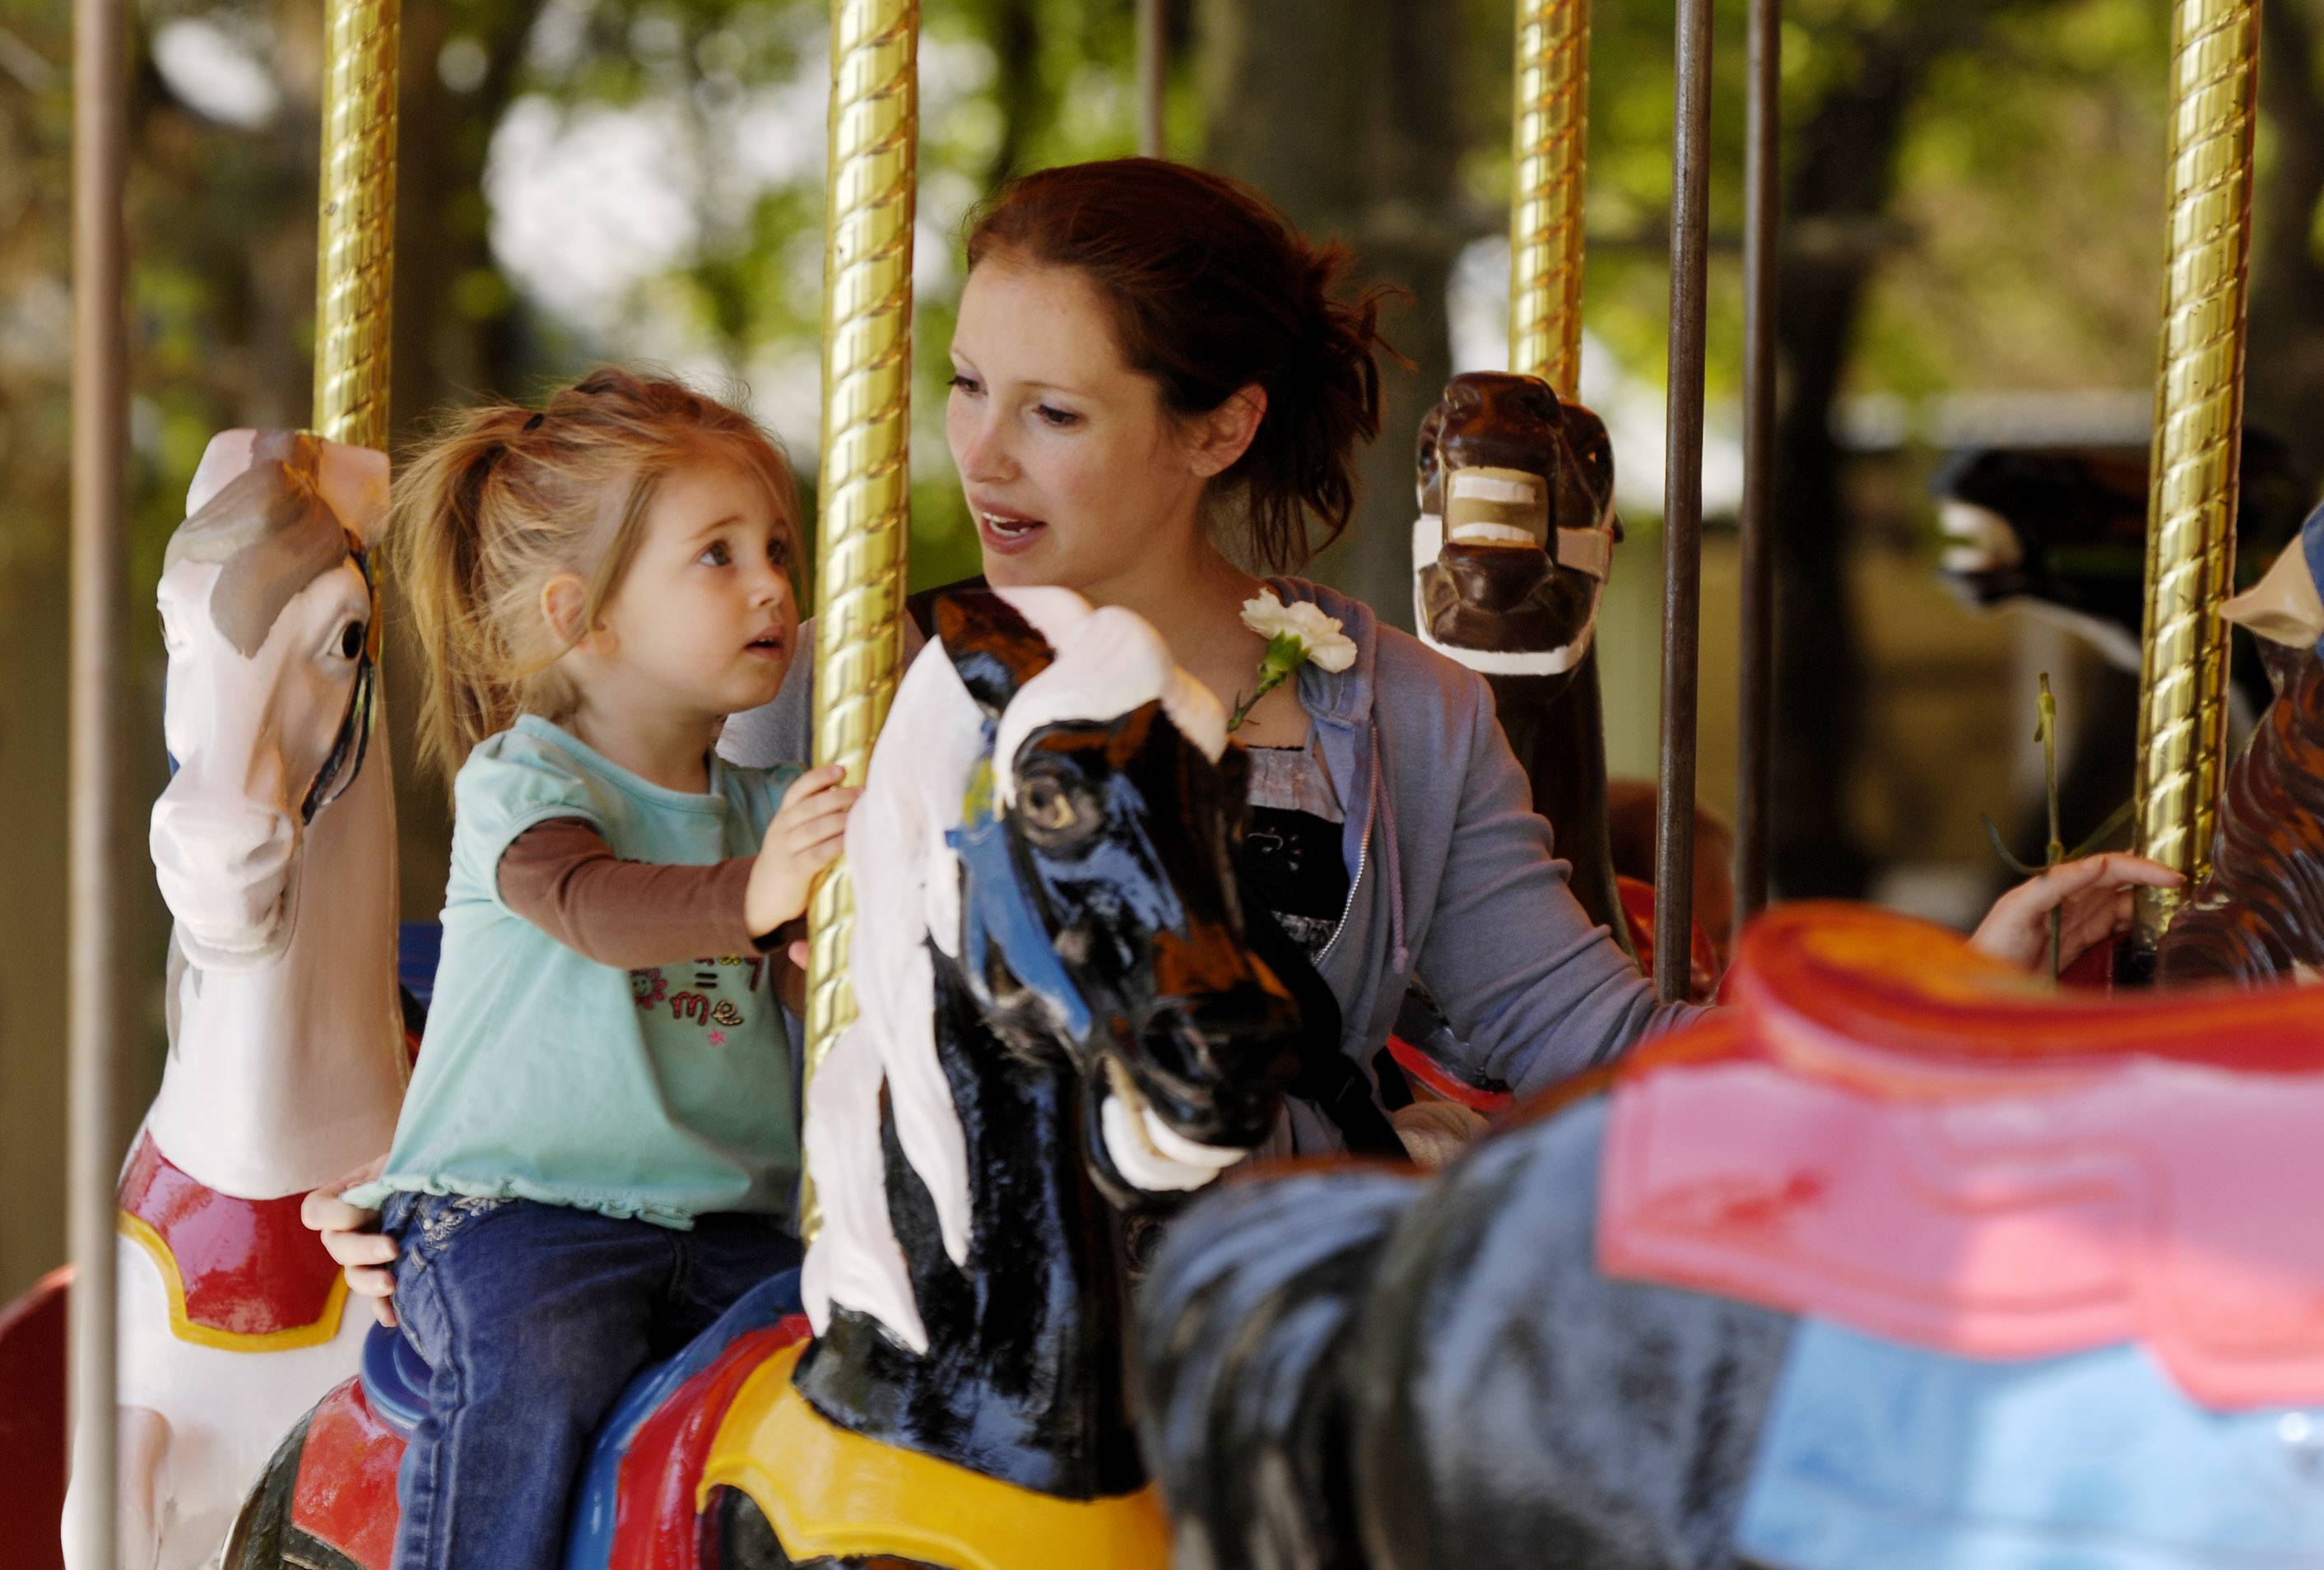 Josephine, 2 and Theresa Welsch of Aurora ride the carousel at Blackberry Farm in Aurora. The park opens for the season Thursday, May 1.